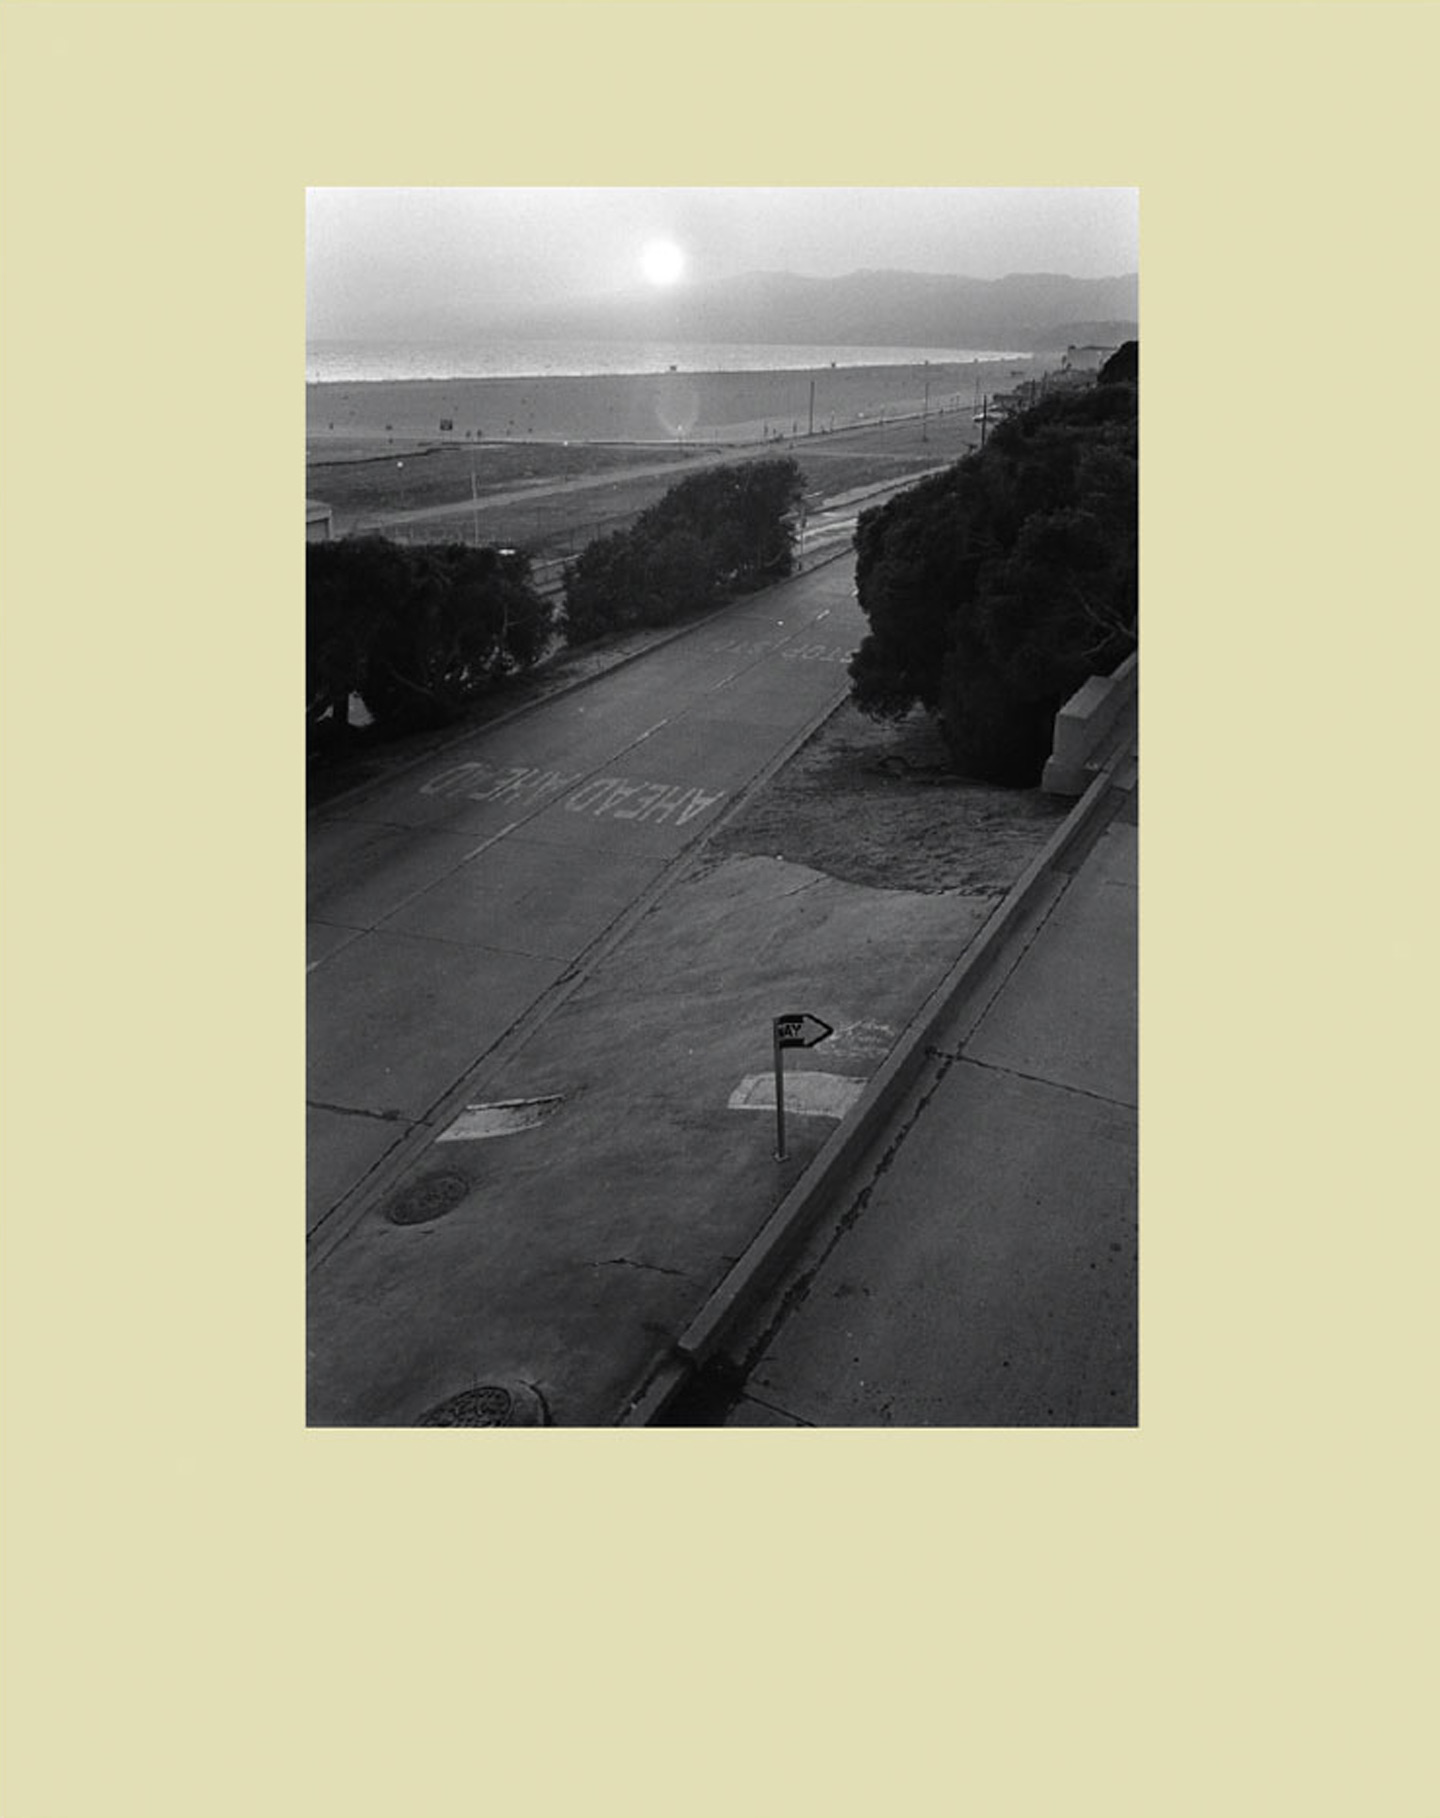 NZ Library #2: Mark Steinmetz: Angel City West, Special Limited Edition (with Print) (NZ Library - Set Two, Volume Six) [SIGNED]